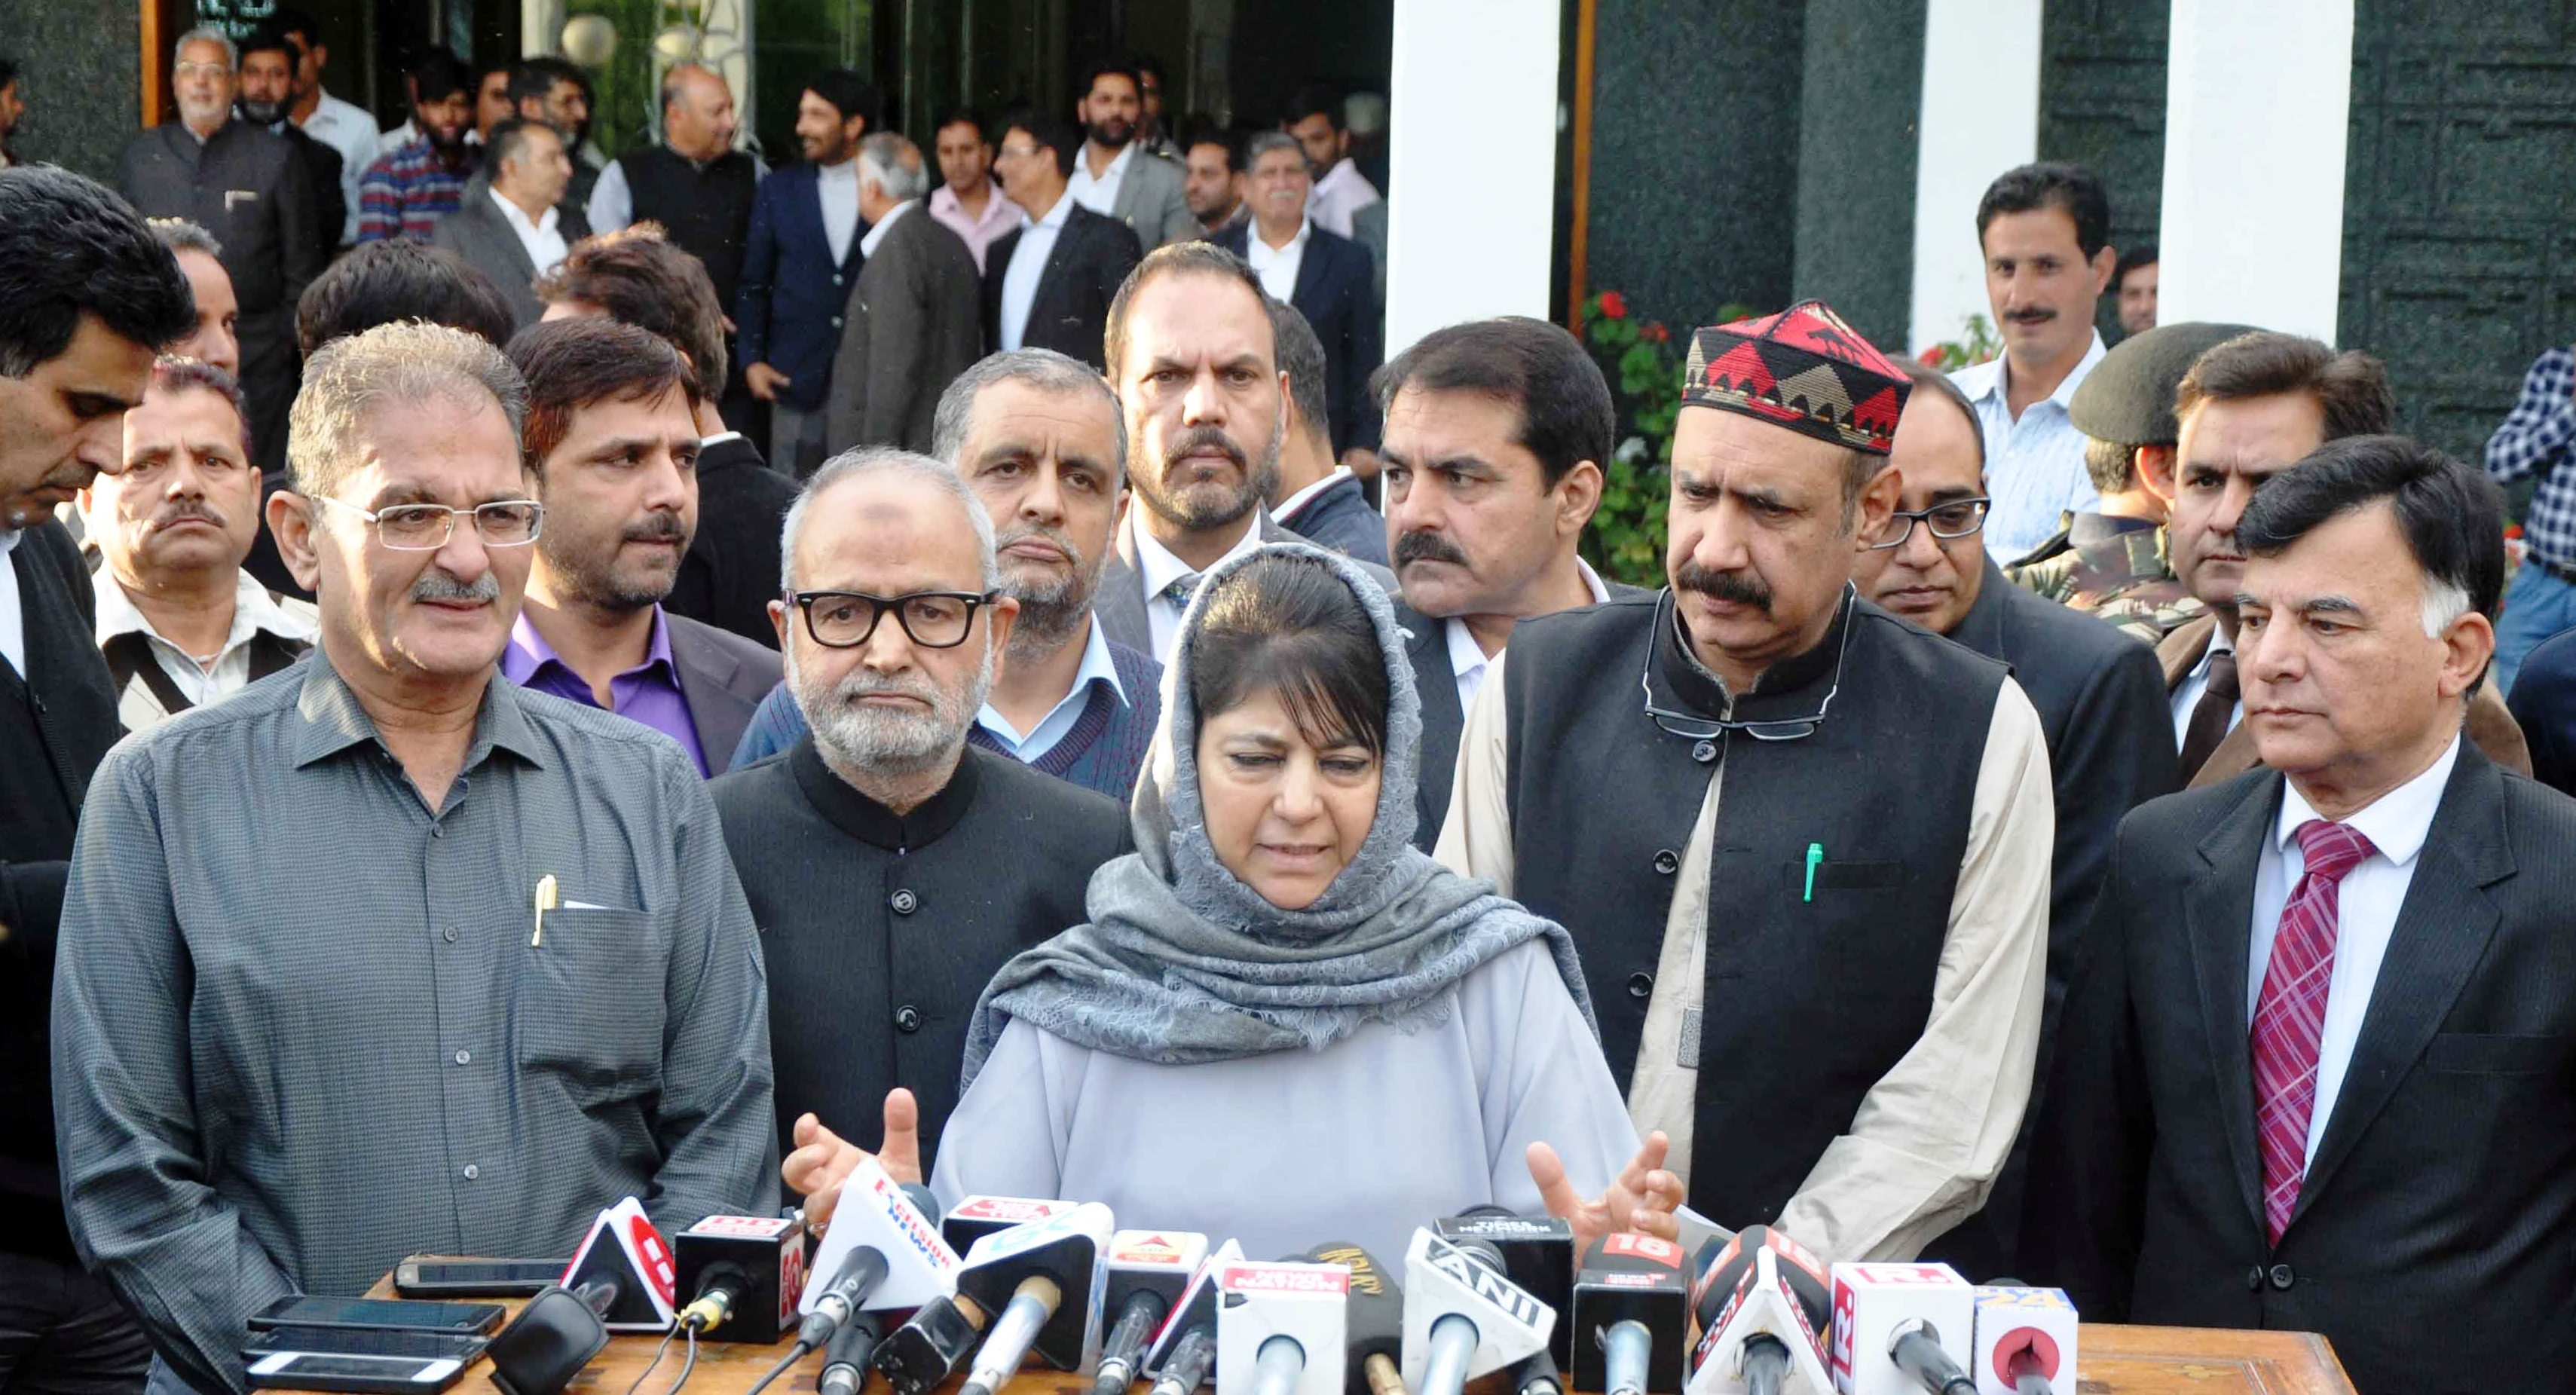 J&K CM Mehbooba Mufti urges for security during Ramzan